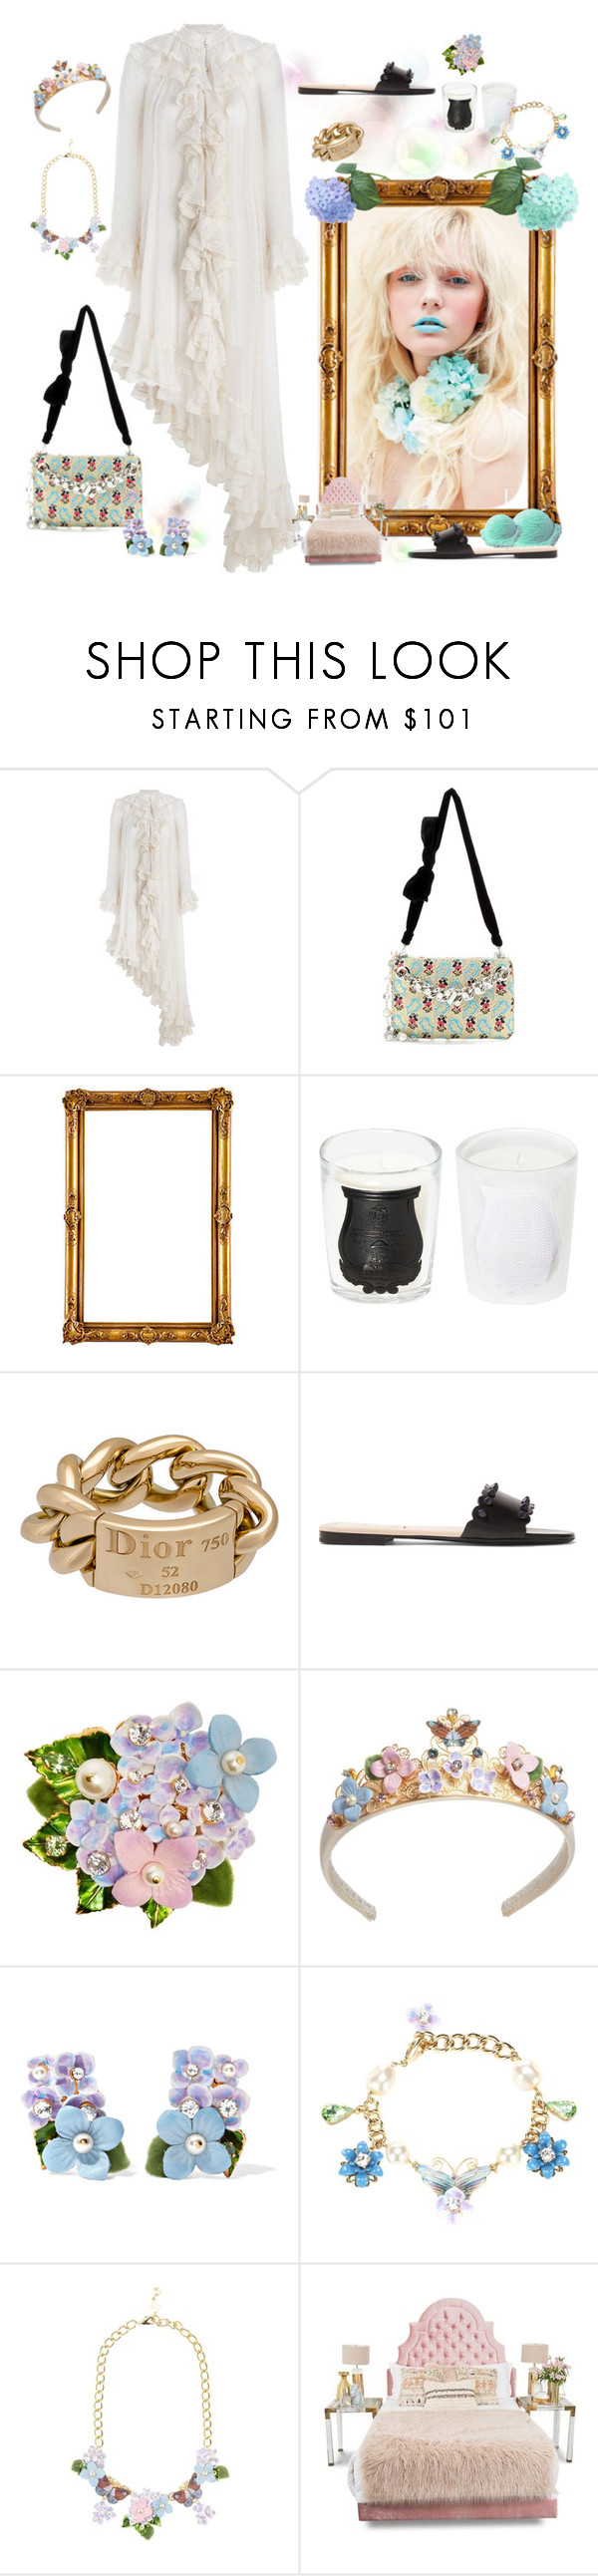 """""""Dreaming"""" by juliabachmann ❤ liked on Polyvore featuring Zimmermann, Miu Miu, Cire Trudon, Christian Dior, Fendi and Dolce&Gabbana"""